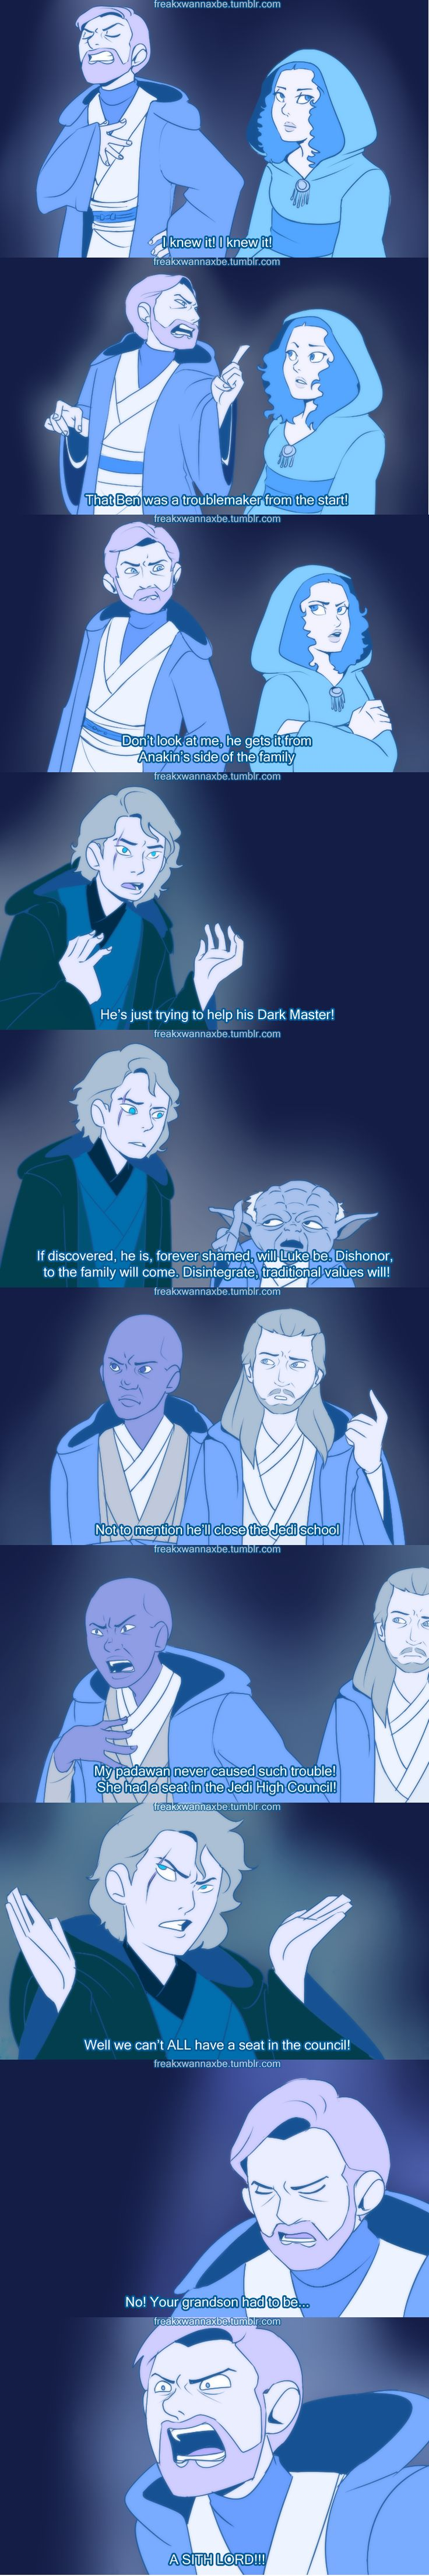 Star Wars/ Mulan...HAHAHA (except for the part that padme is a force ghost...she wasn't a jedi)